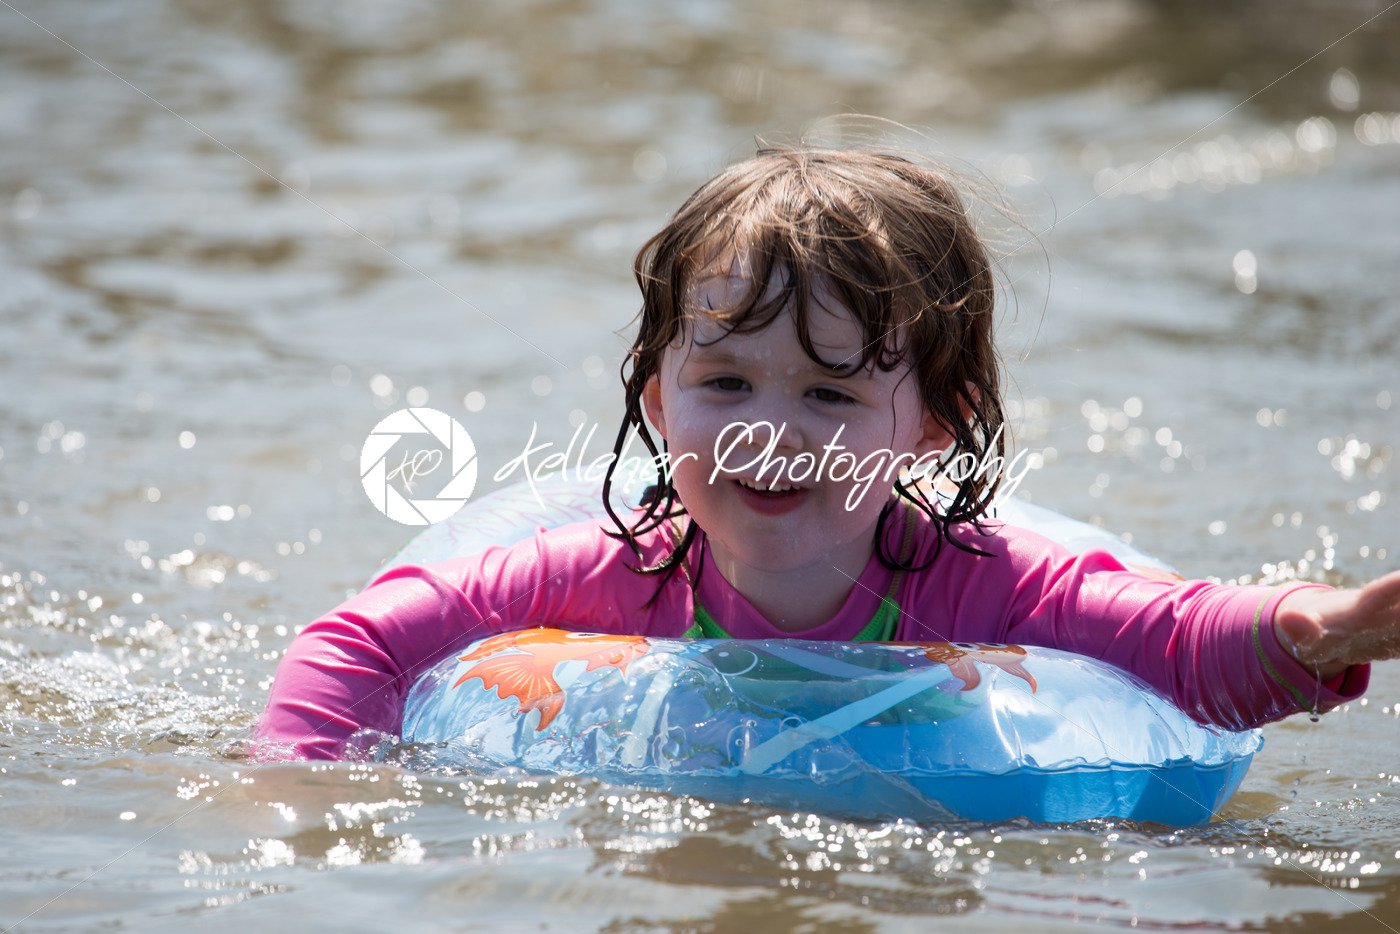 young girl floating in inner tubes in a blissful state - Kelleher Photography Store